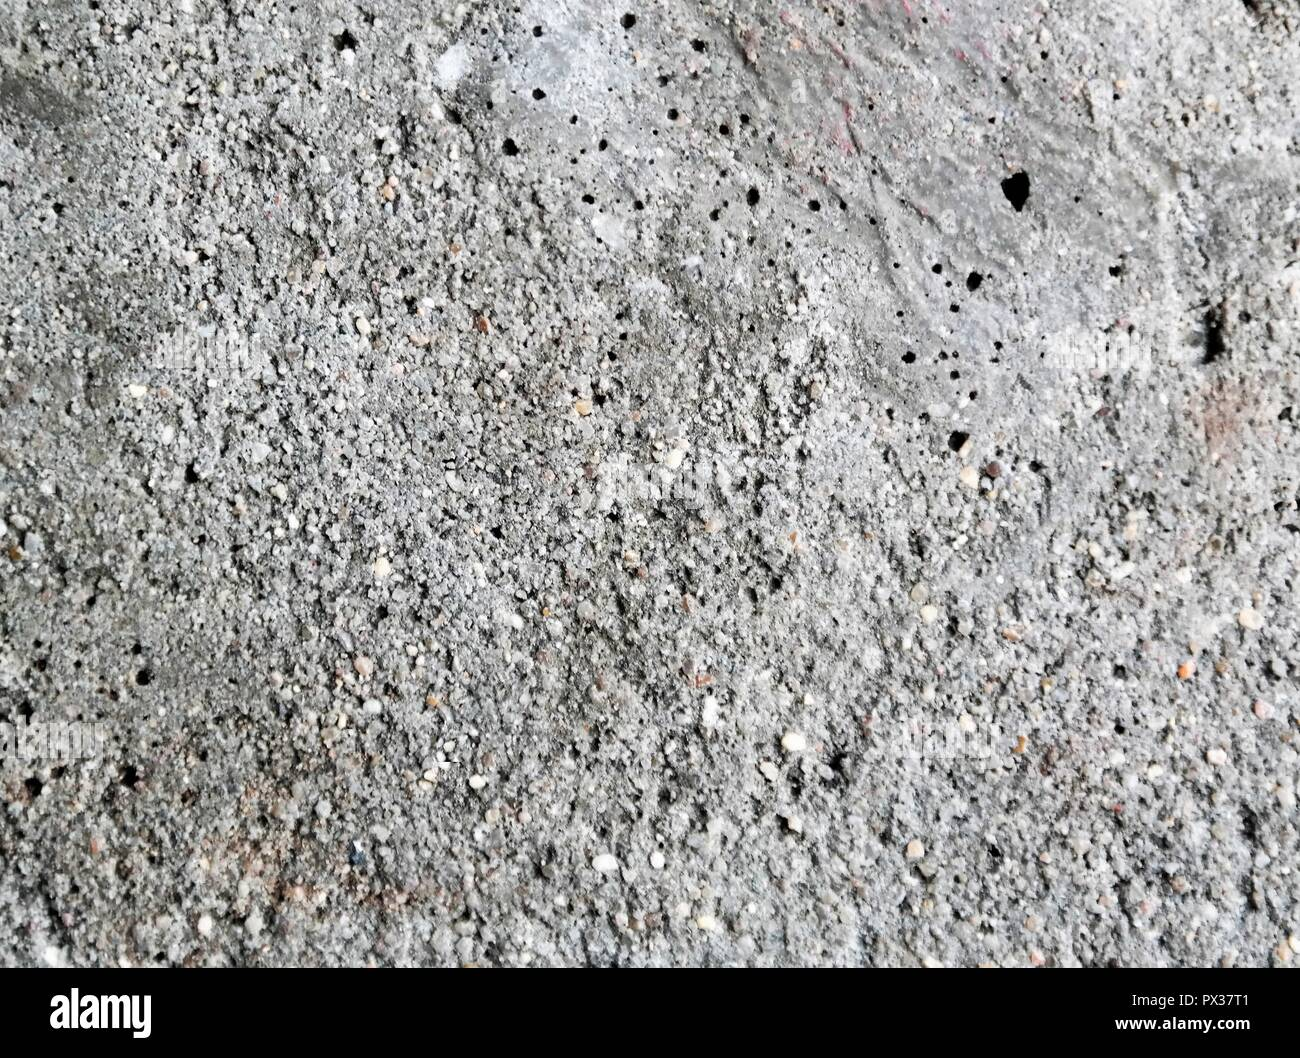 close-up of grey concrete, construction material - Stock Image